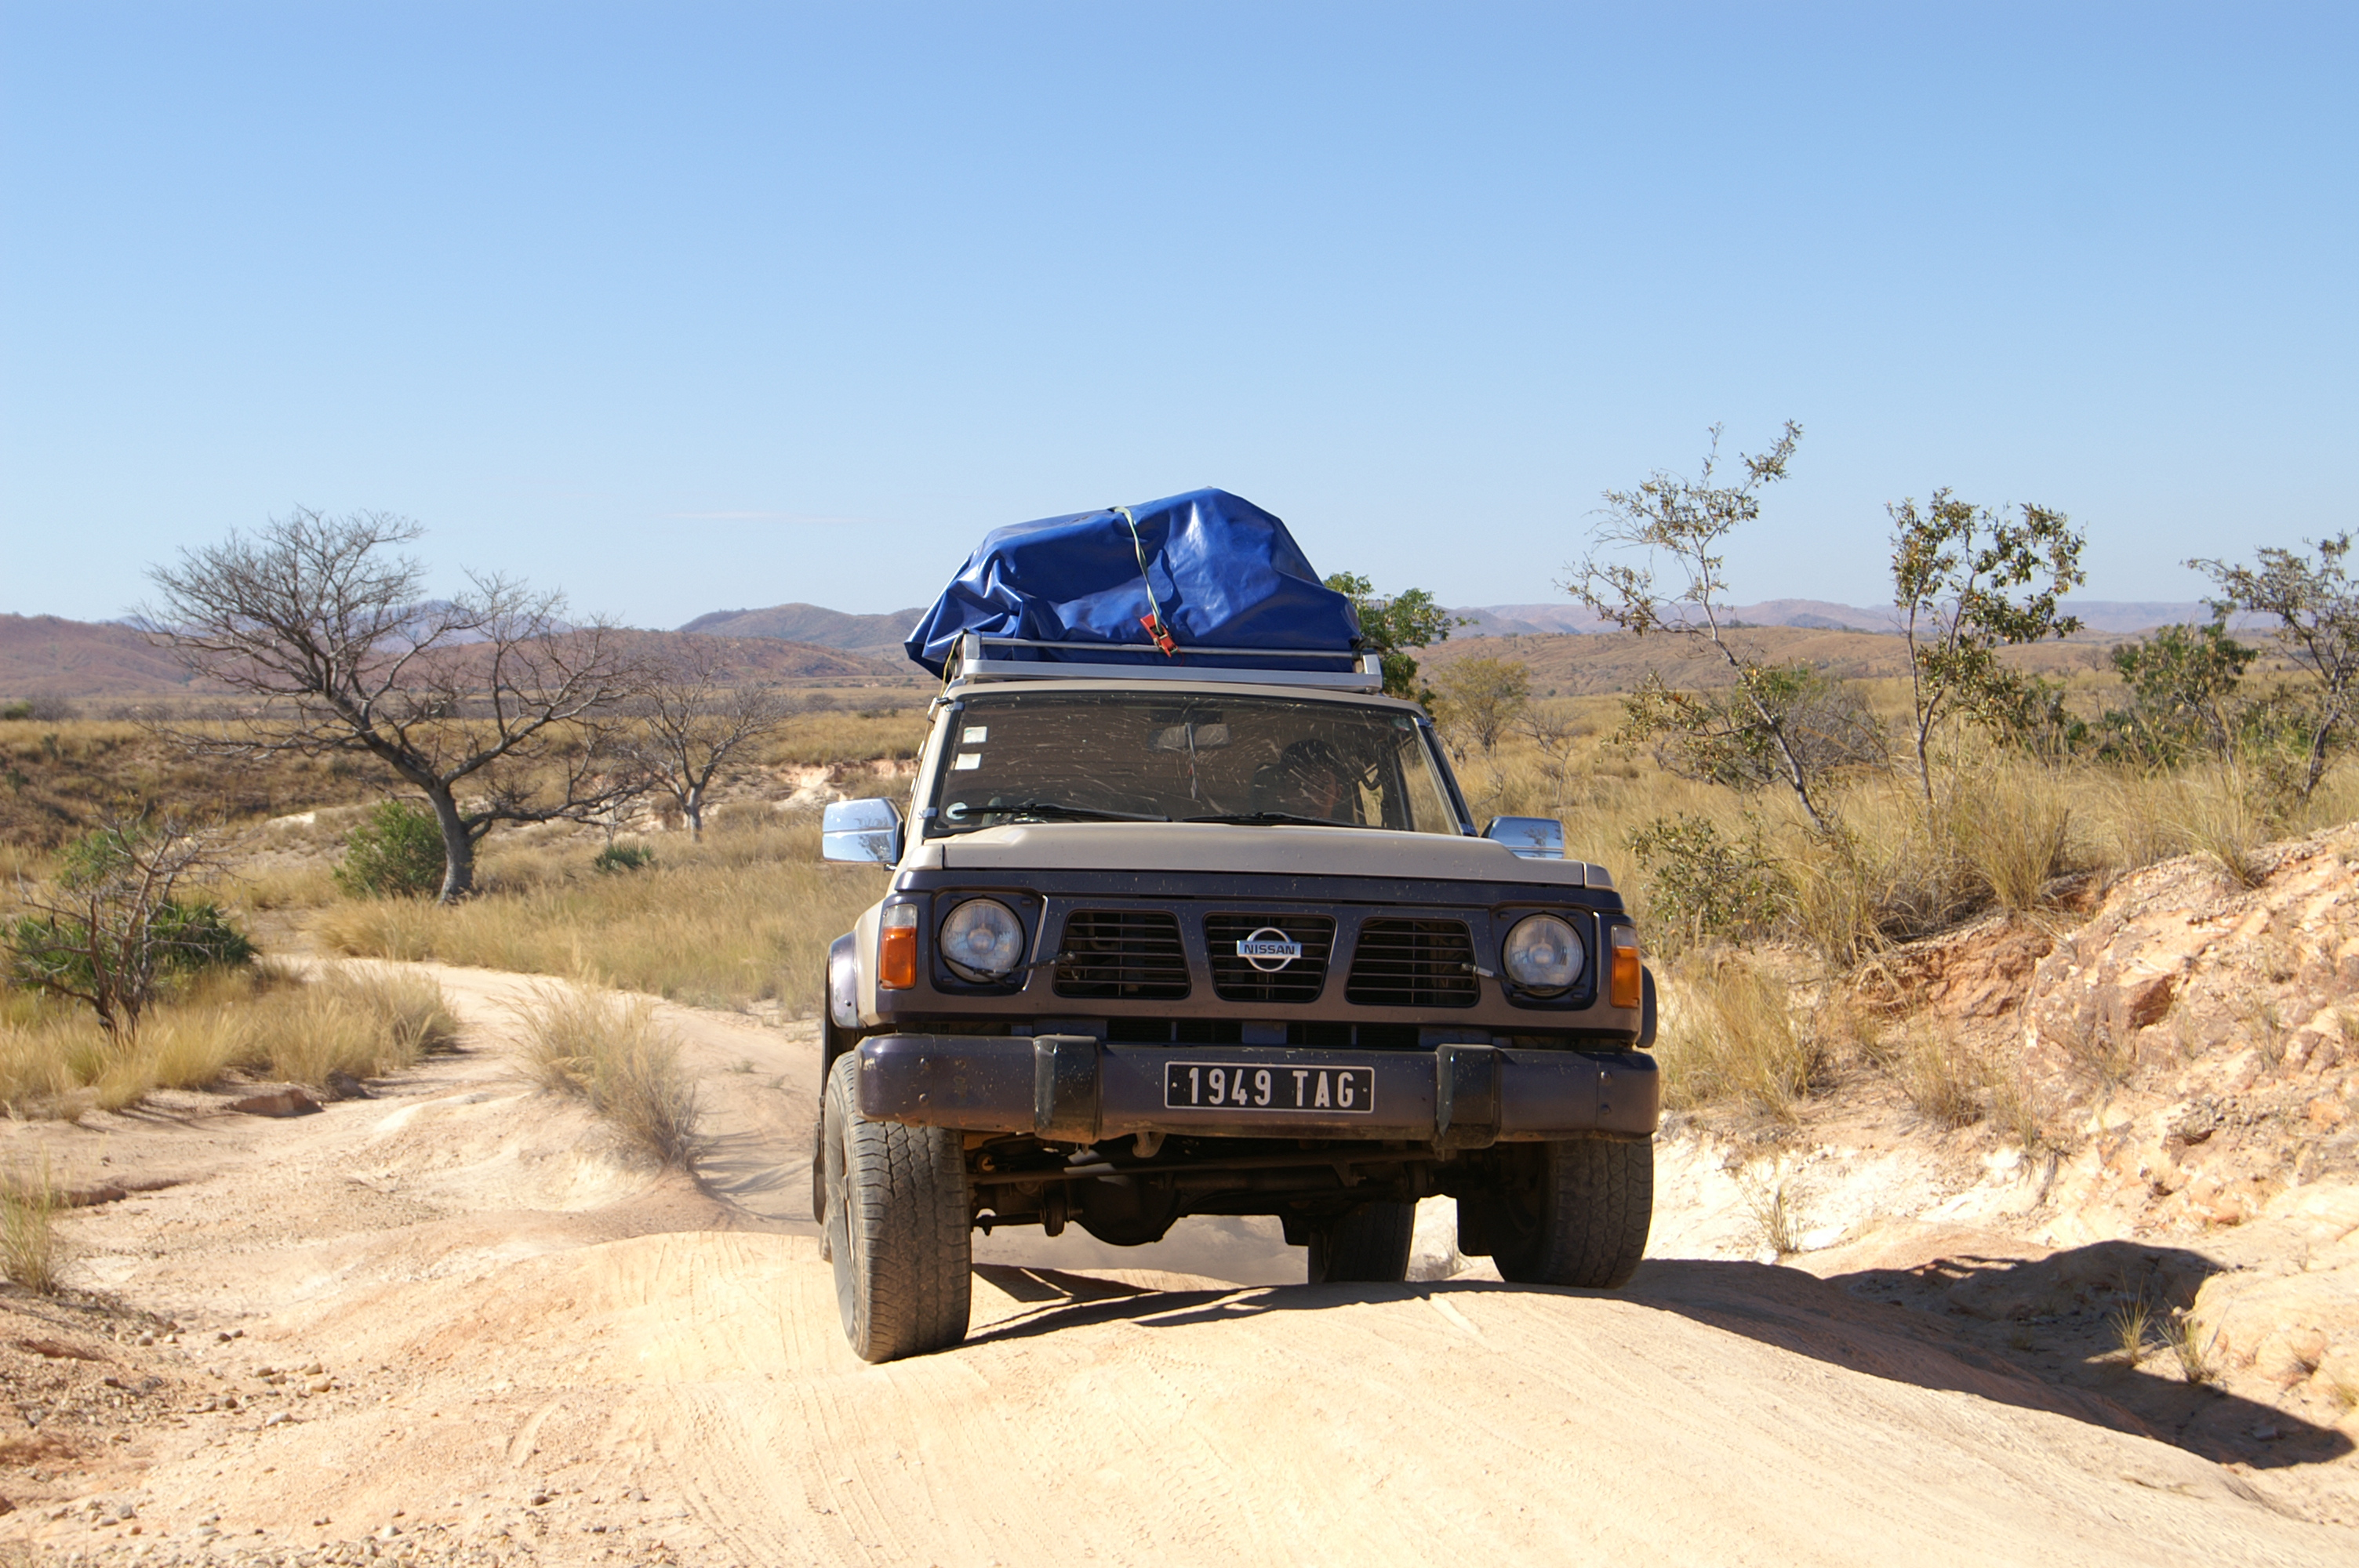 Namibia 4x4 Safari 5